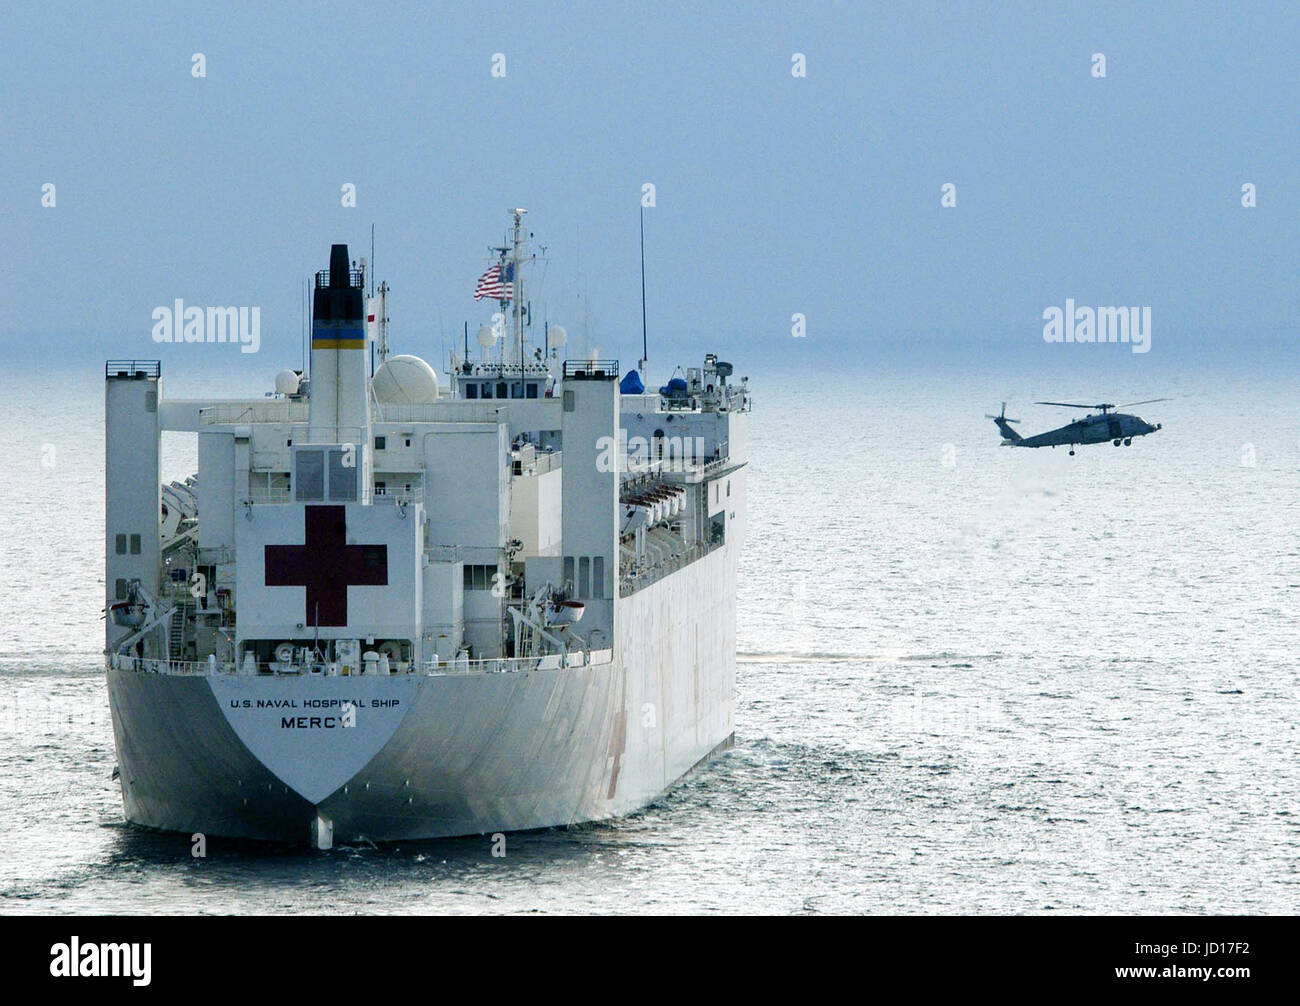 The hospital ship usns mercy t ah 19 arrives on station near the hospital ship usns mercy t ah 19 arrives on station near banda aceh sumatra indonesia to continue us military humanitarian assistance and relief stopboris Images